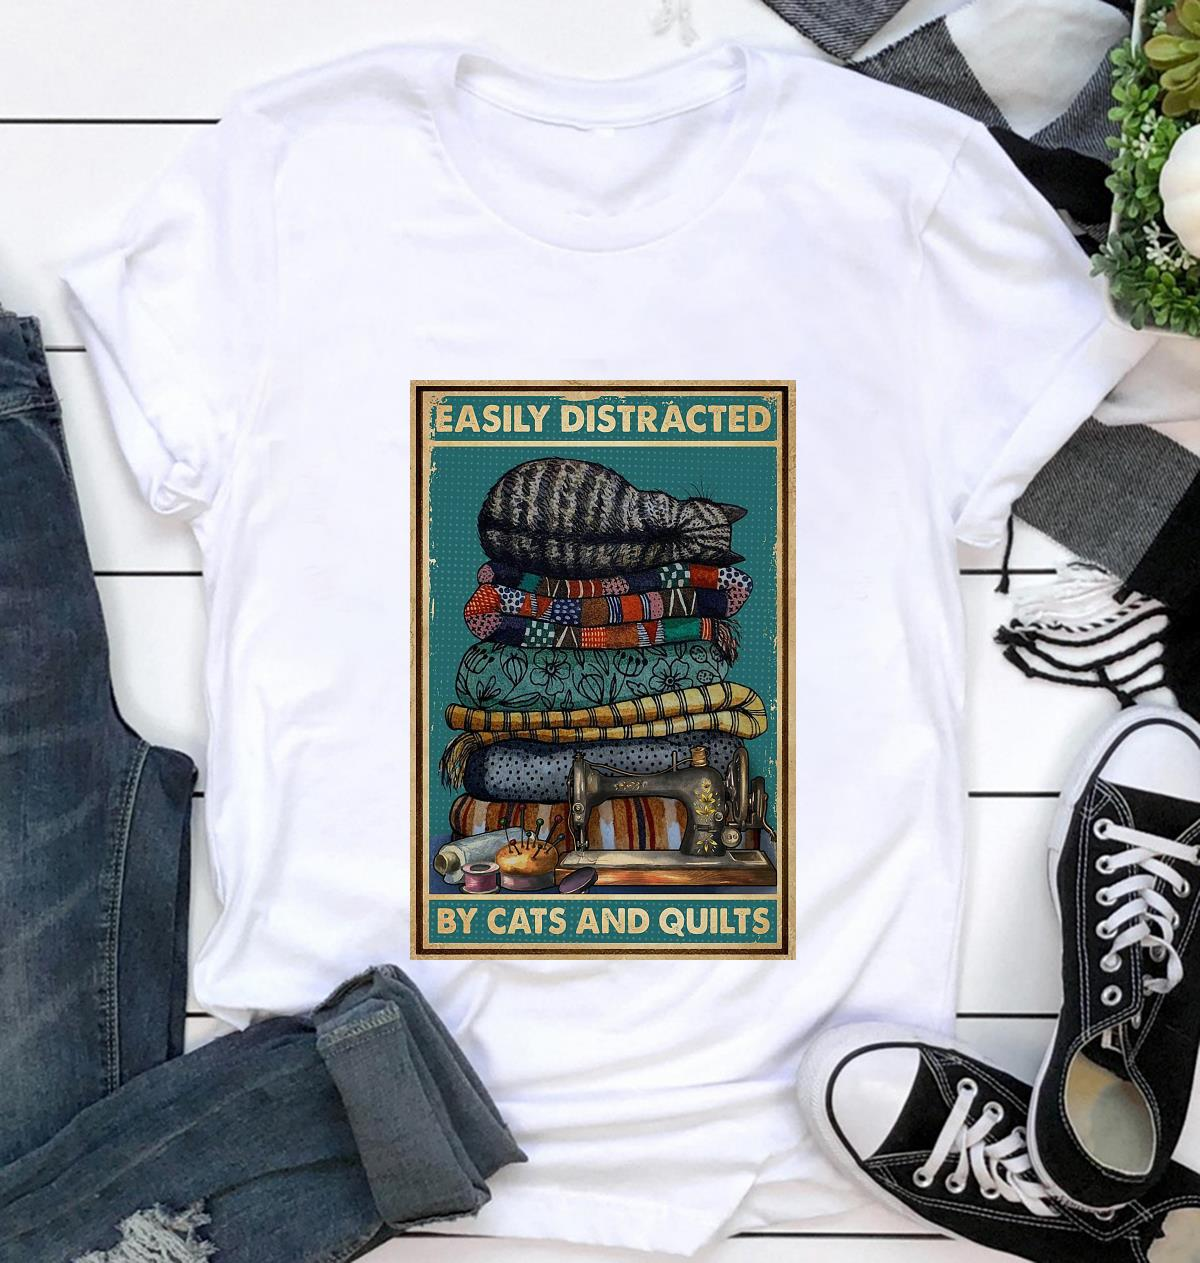 Easily distracted by cats and quilts poster t-shirt